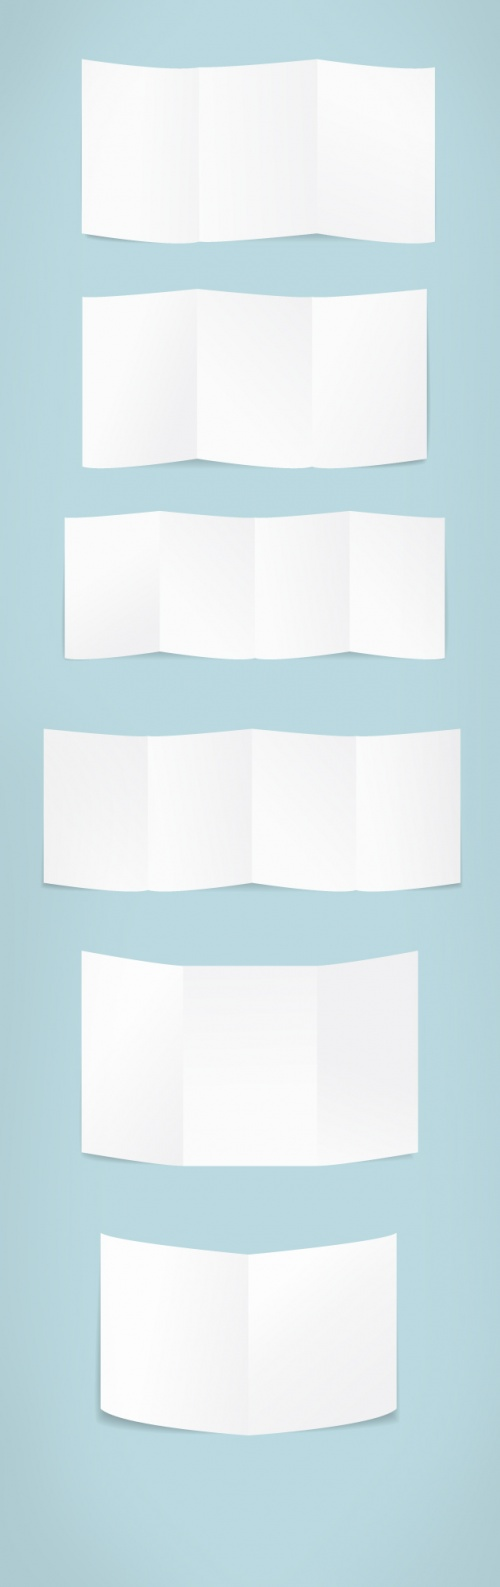 Designtnt - Folded Paper Vector Set